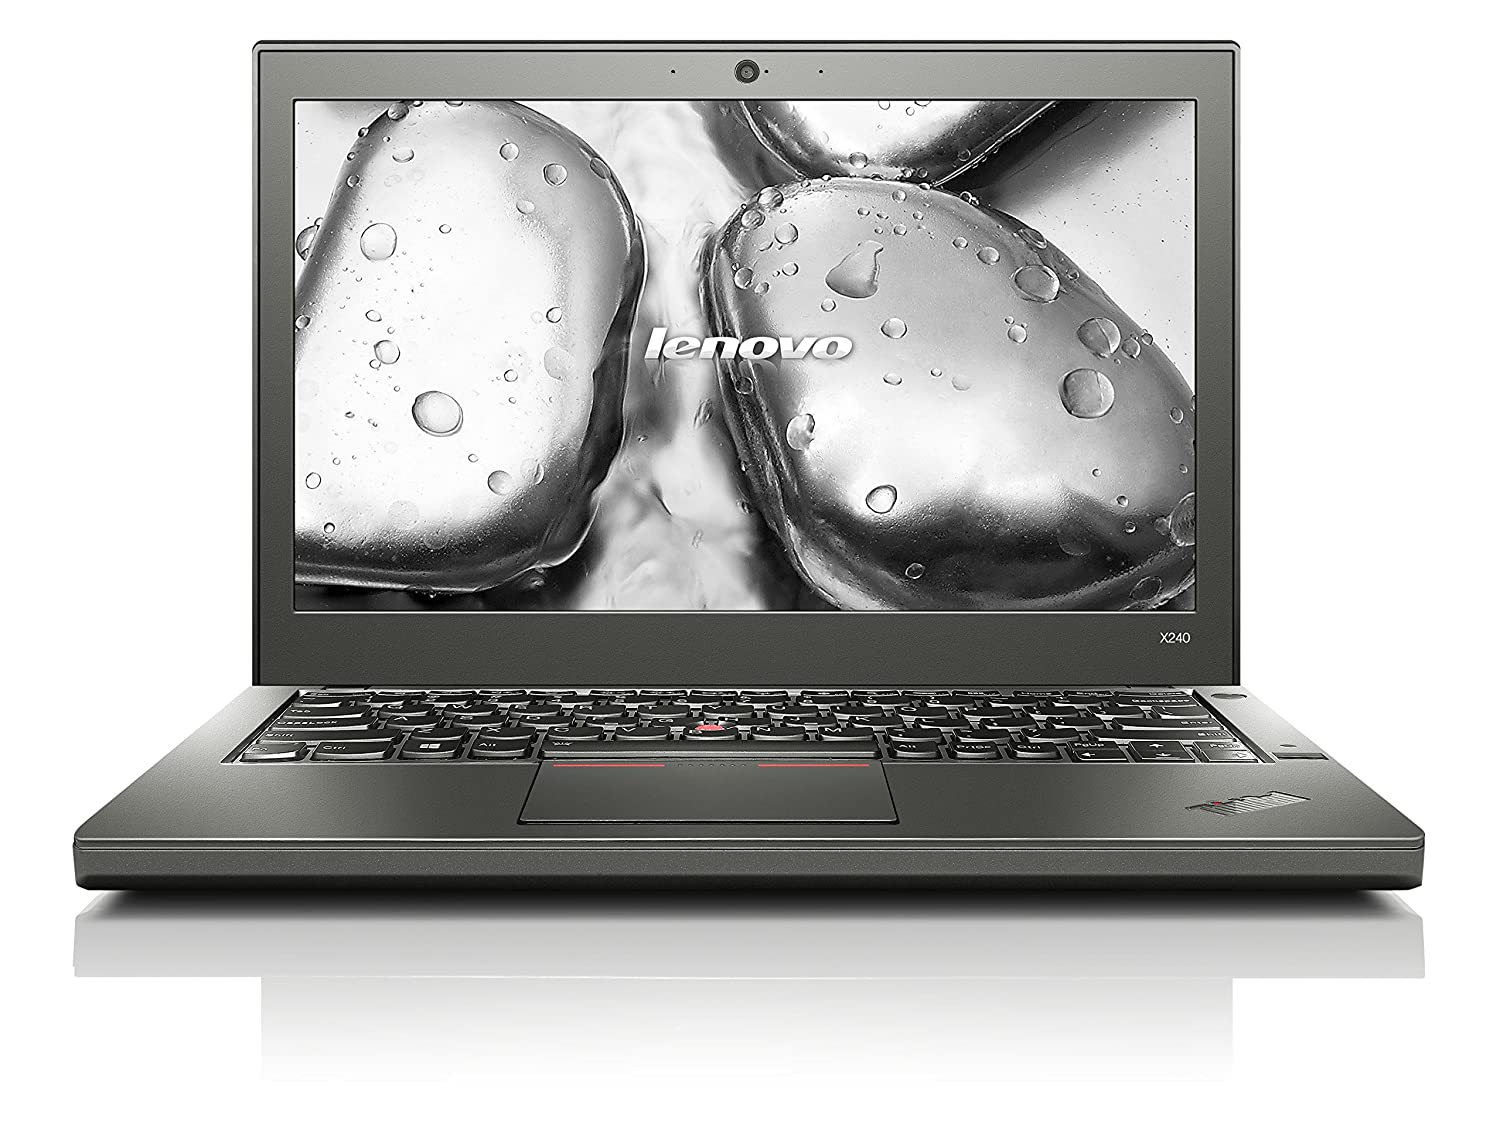 Lenovo ThinkPad X240 Laptop